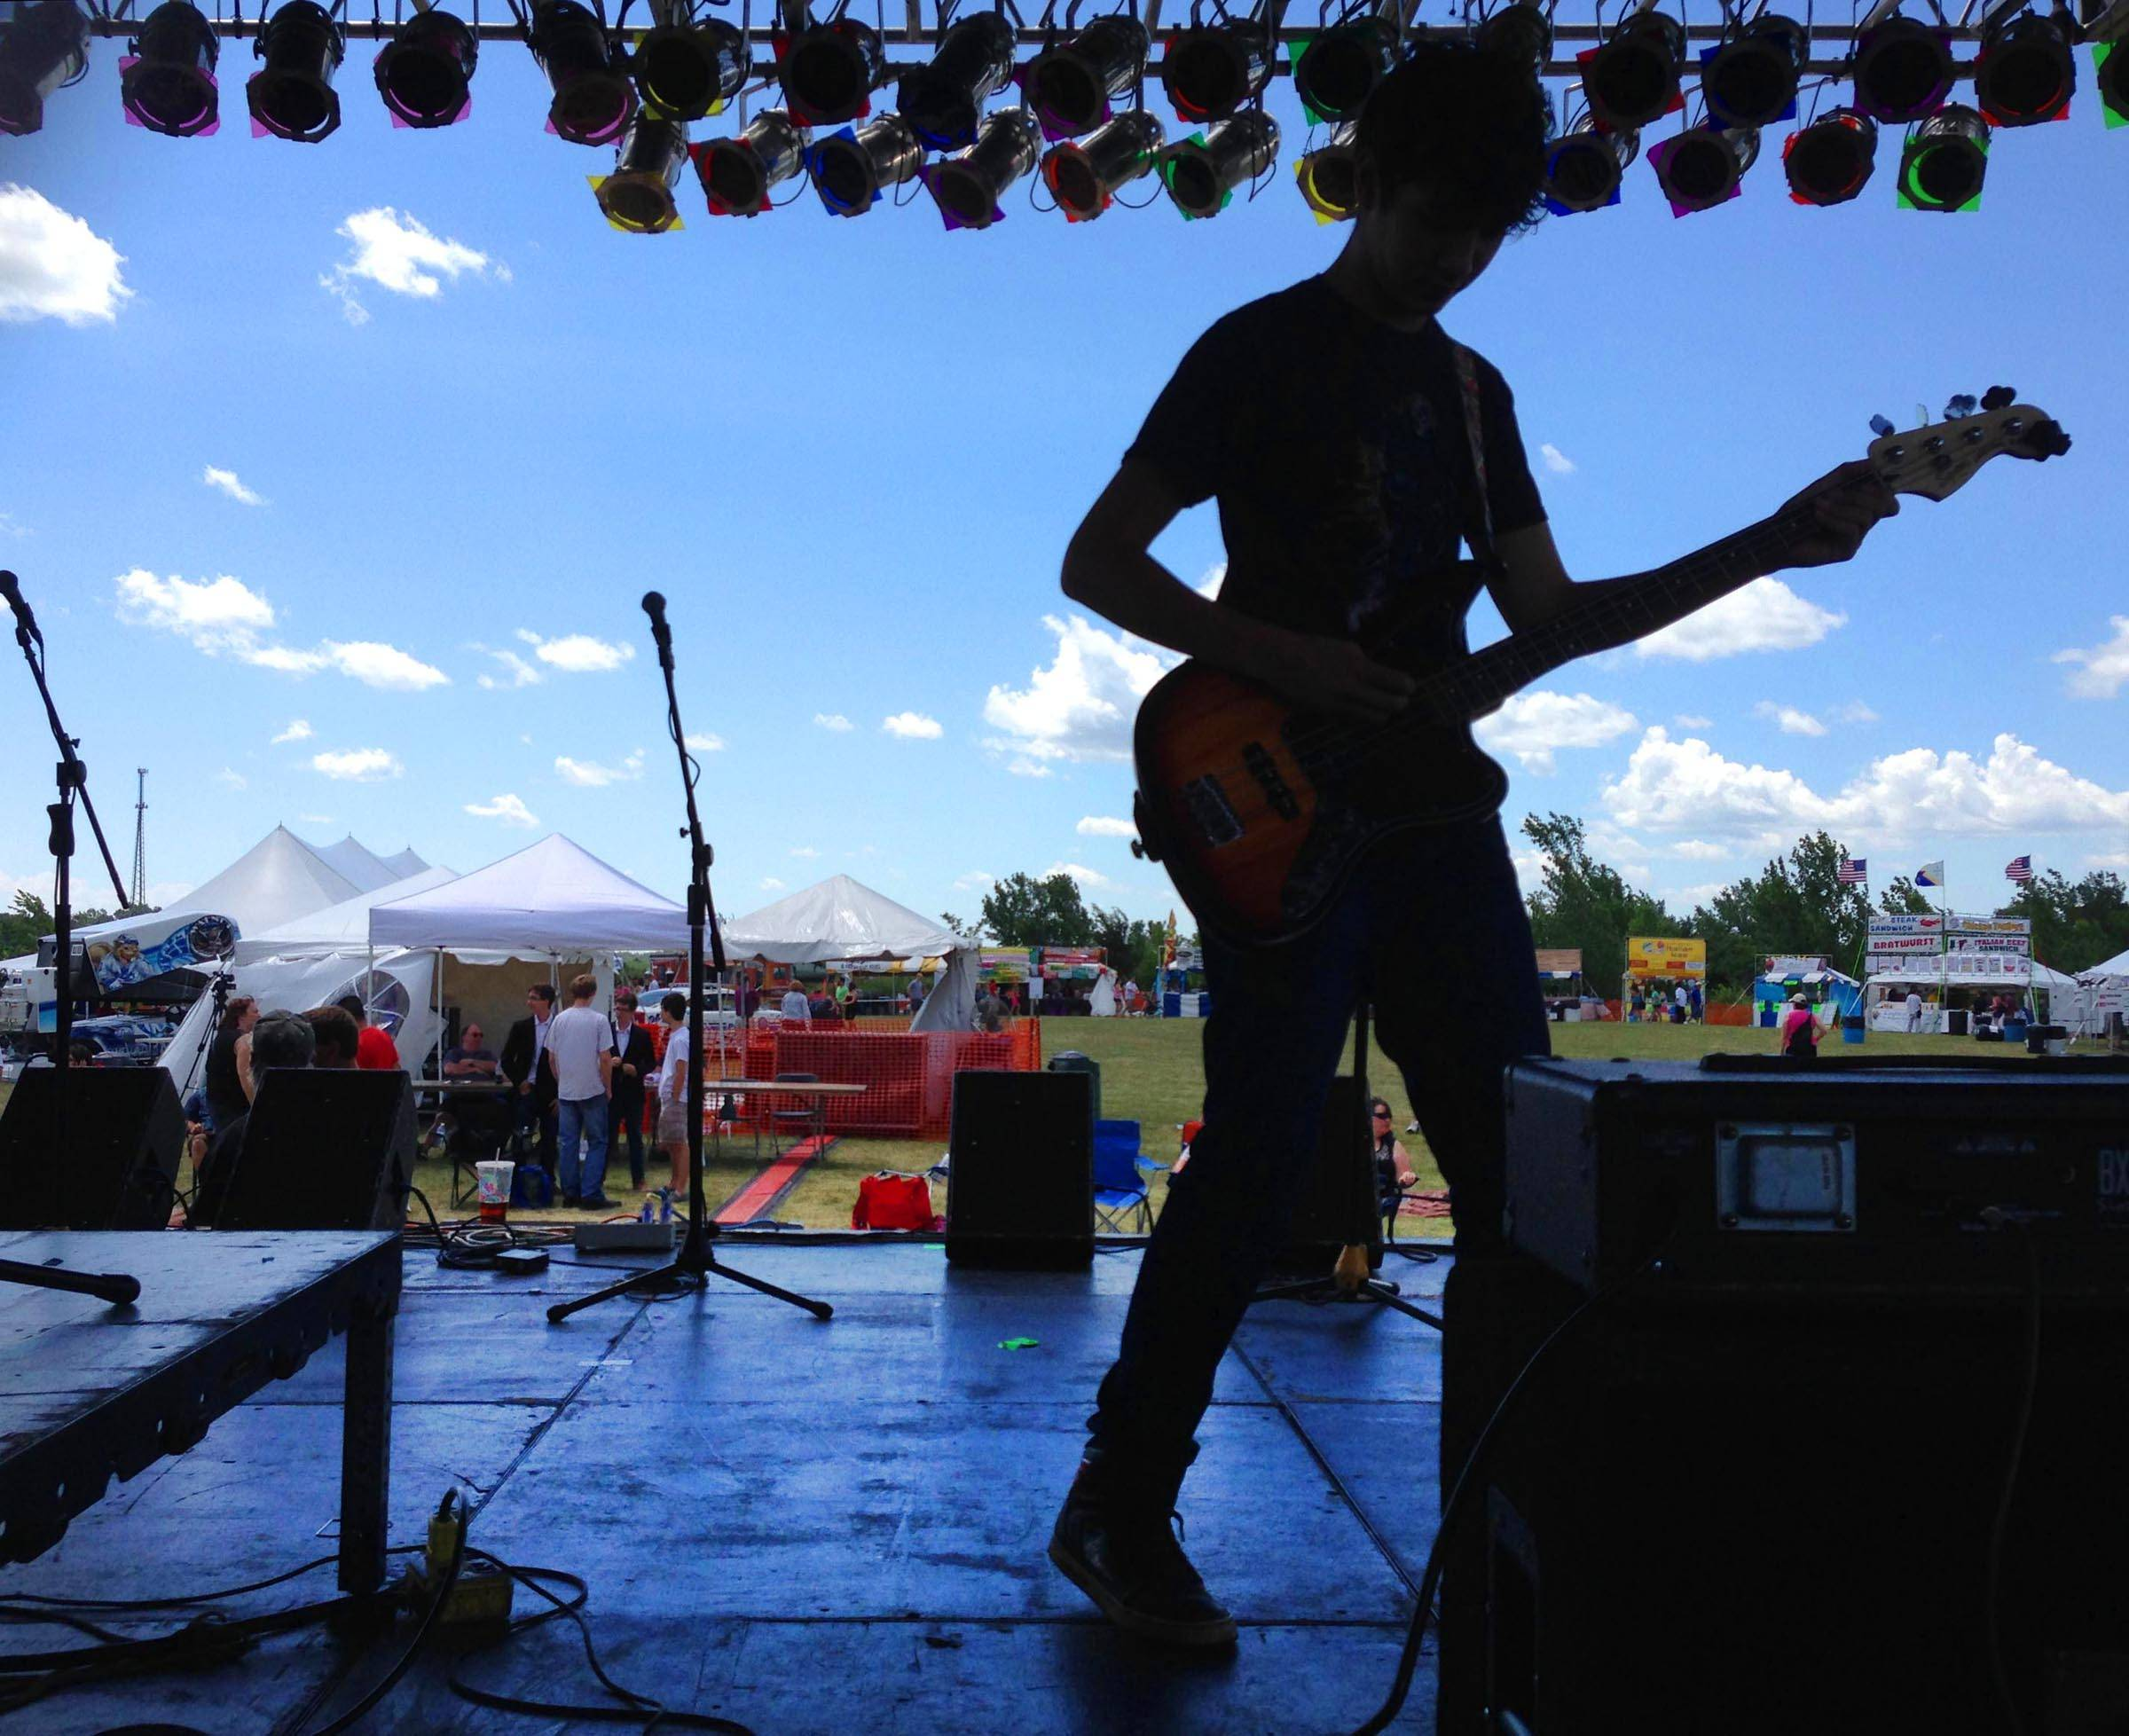 Cesar Salceda, 18, tunes his bass guitar as his band The Choice prepared to take the stage Sunday at the Illinois Battle of the Bands regional competition during the Algonquin Founders' Days Festival. The experimental indie rock band is from Chicago.